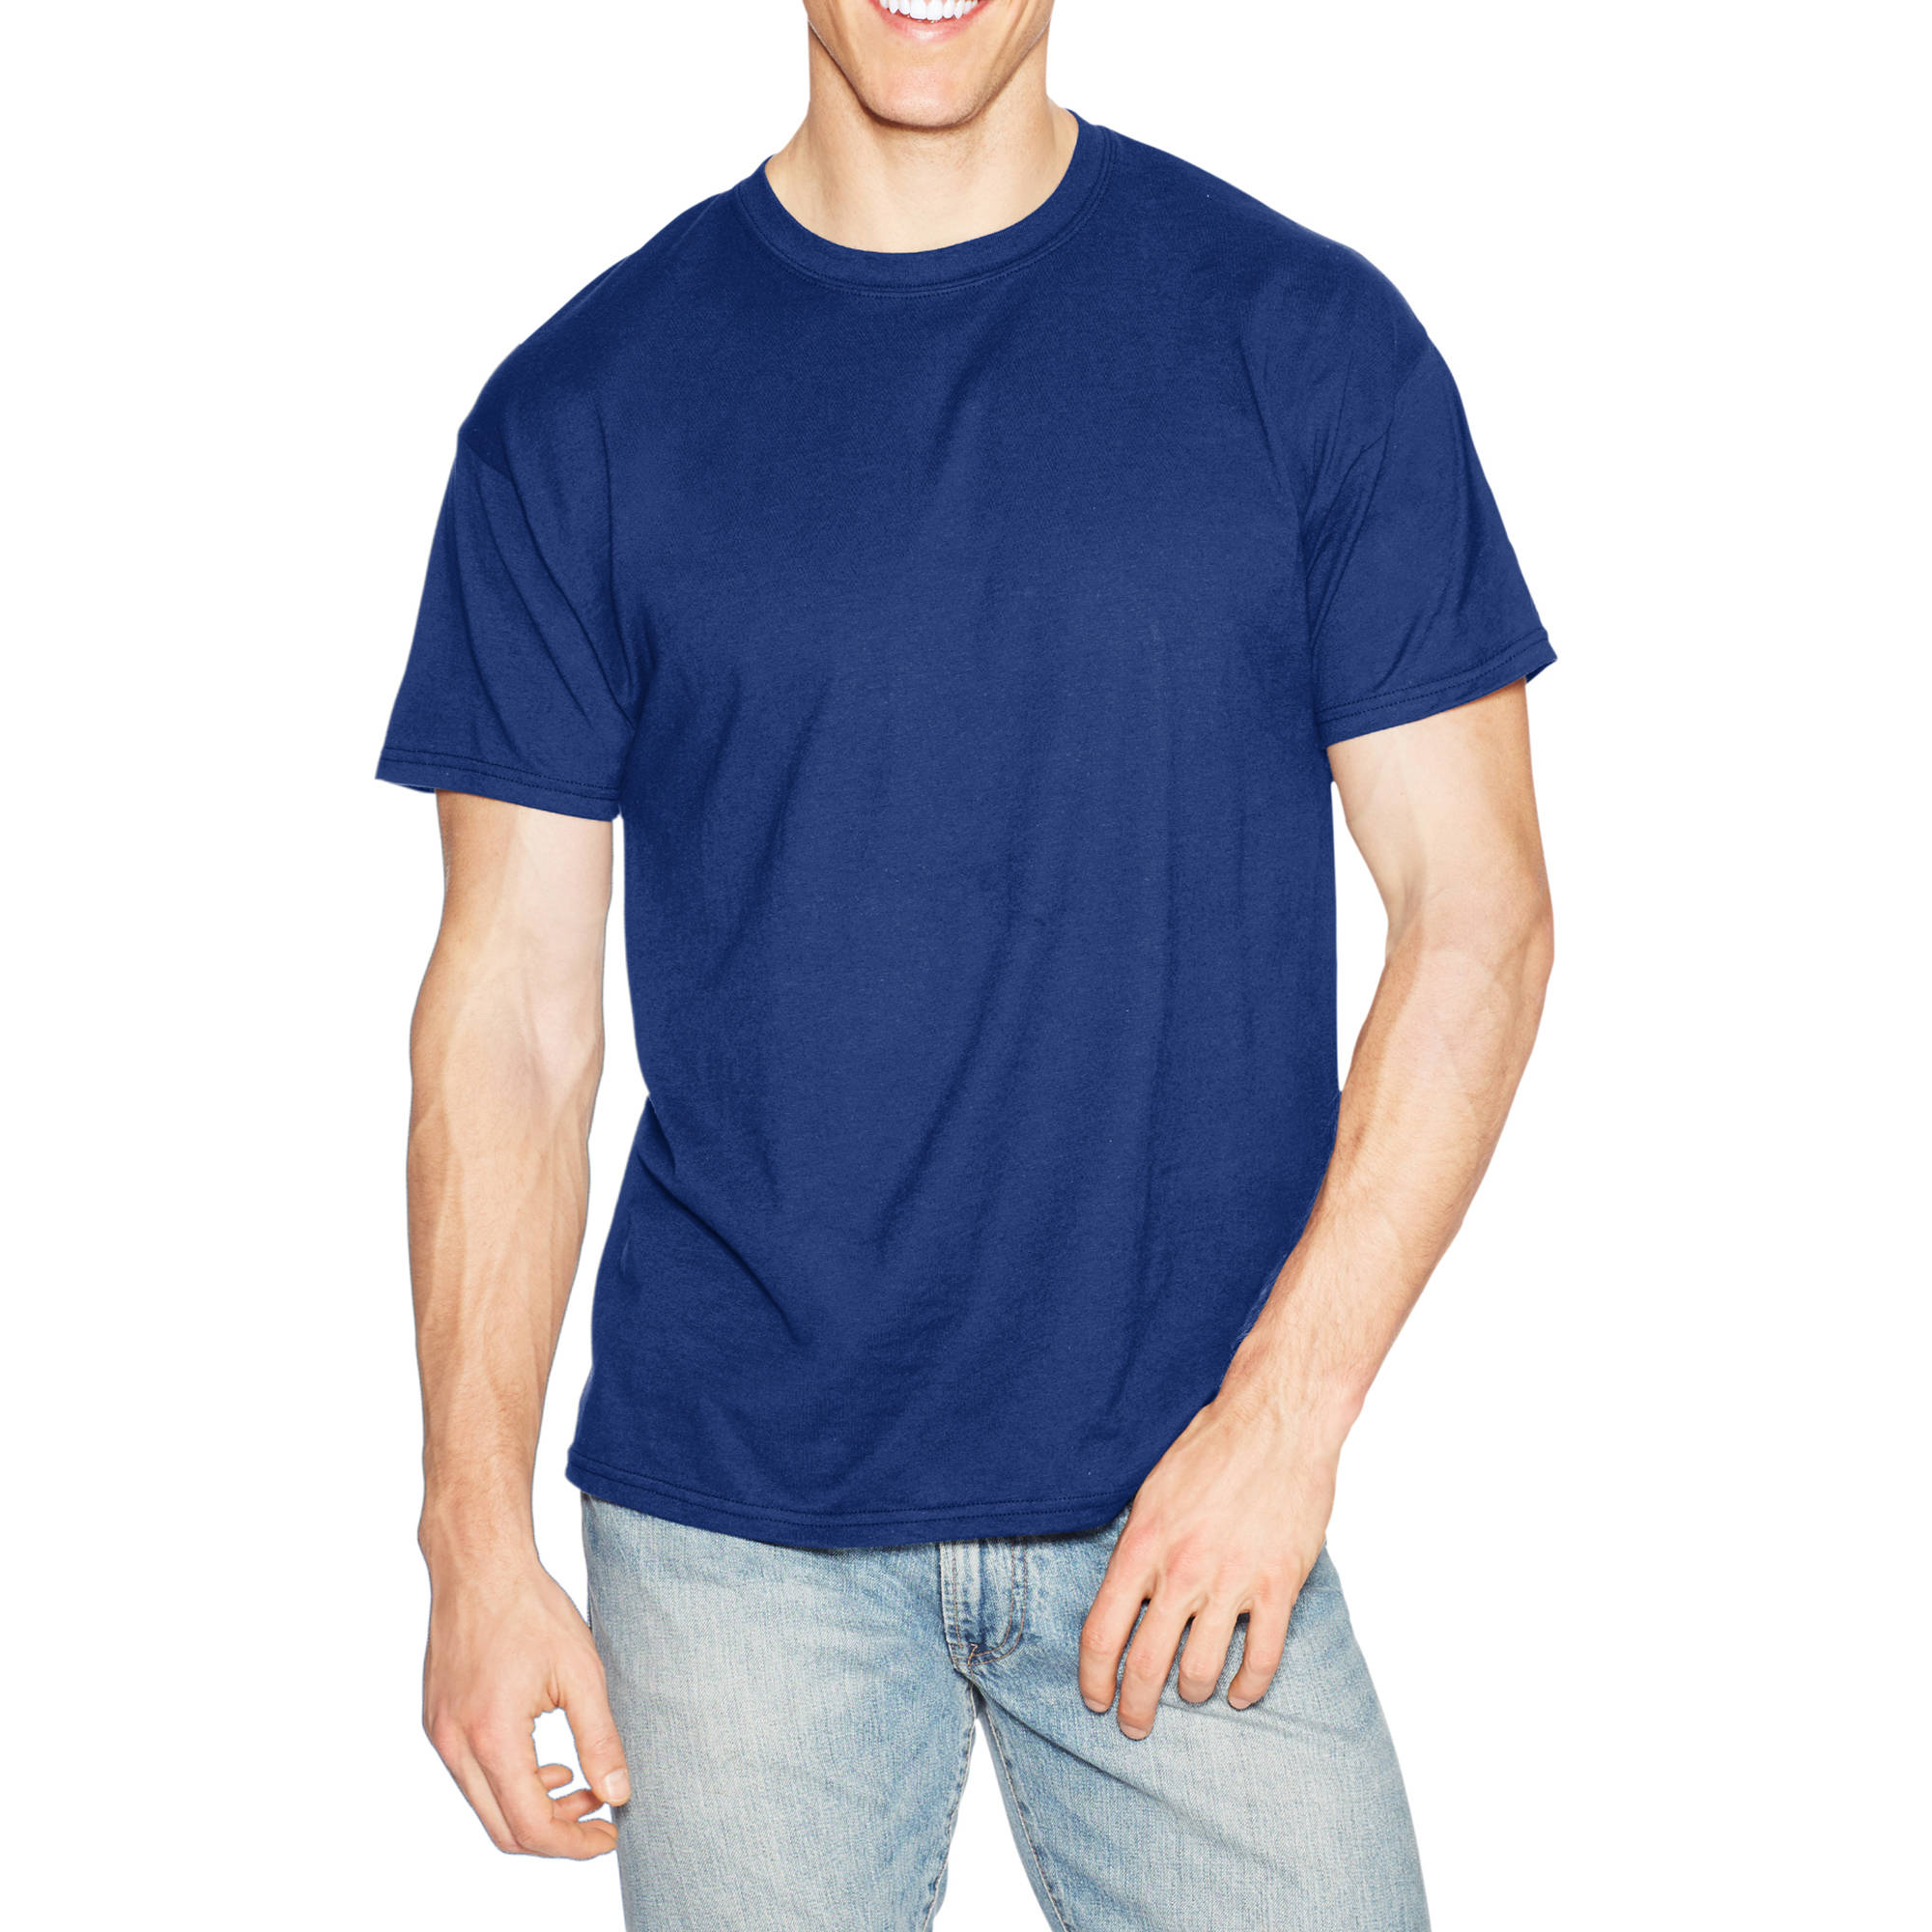 Hanes Big Men's X-temp Short Sleeve Tee